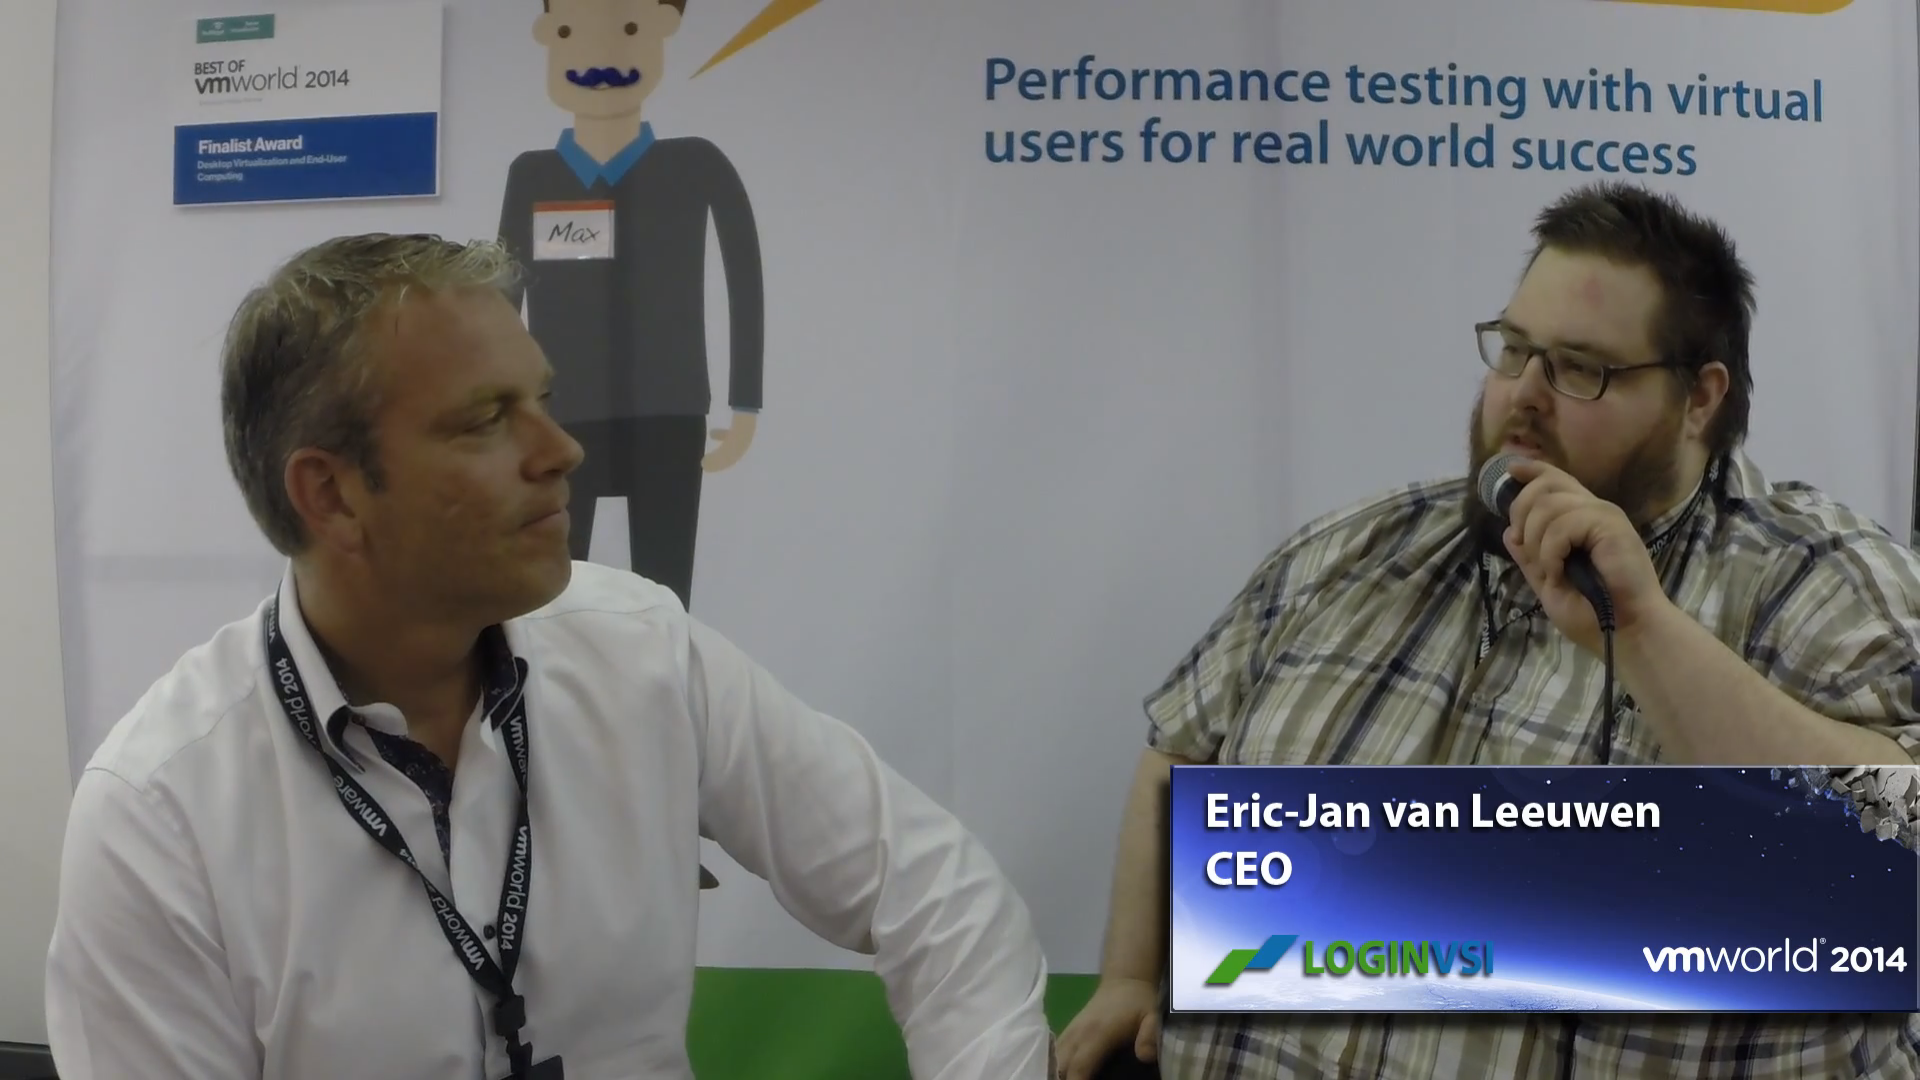 VMworld 2014 - Interview with LoginVSI's CEO Eric-Jan van Leeuwen